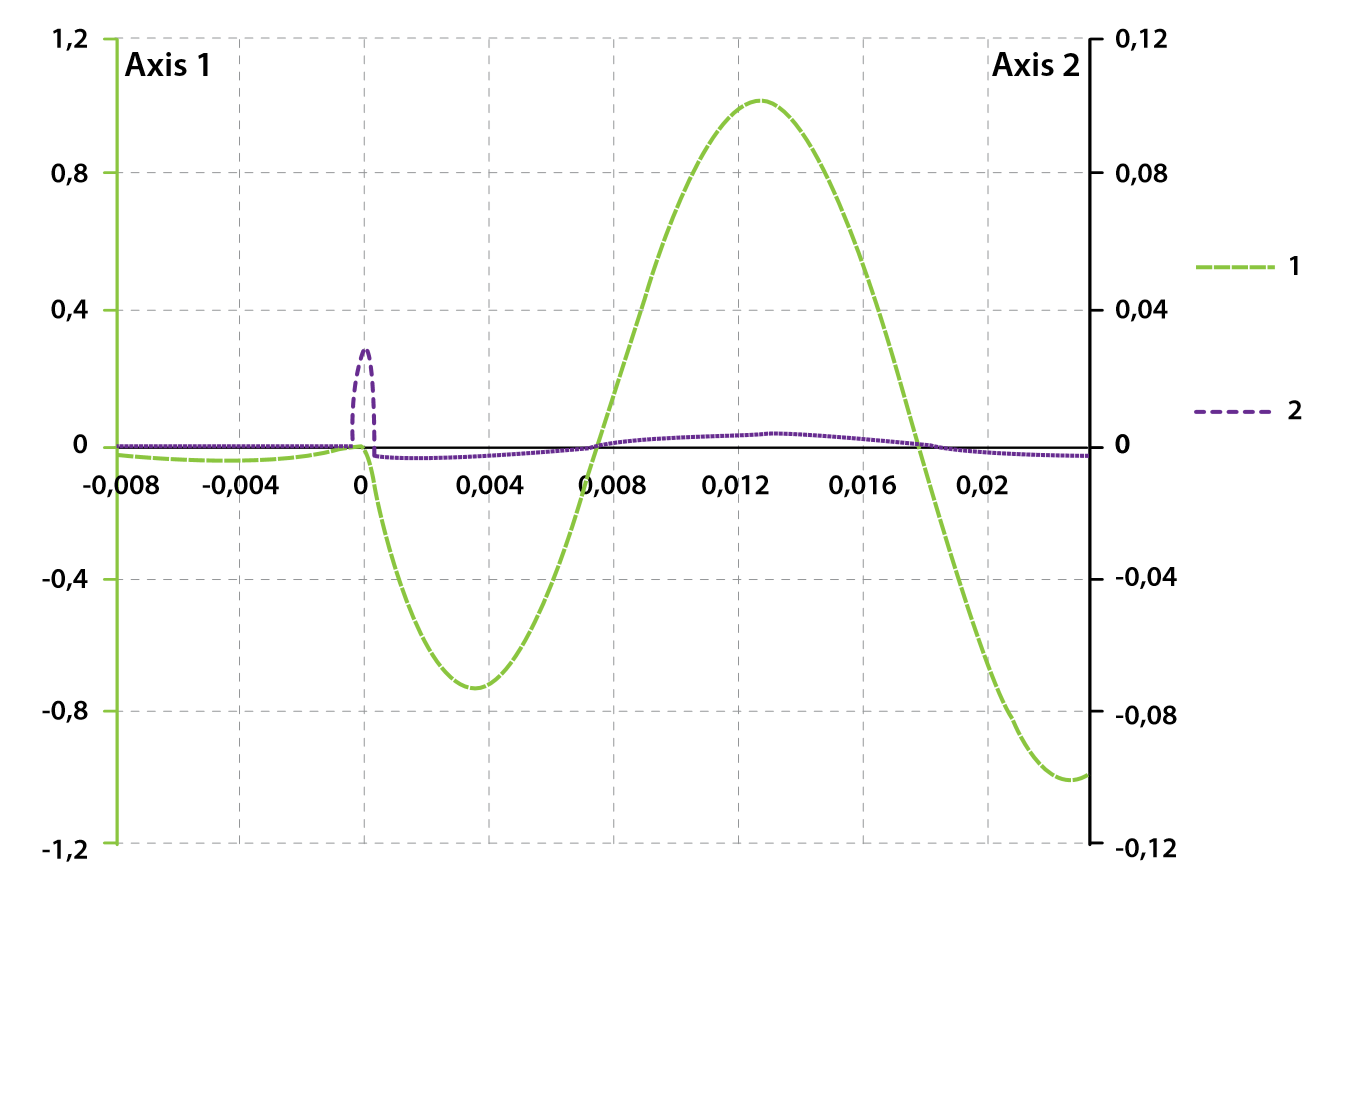 Figure 4. illustrates the accuracy of the linear interpolation for a power system transient. The original signal (curve 1) is plotted with the y-axis on the left (axis 1), and the error of the lost sample recovery calculated for each of the successive data points (curve 2) is plotted with the y-axis on the right (axis 2).